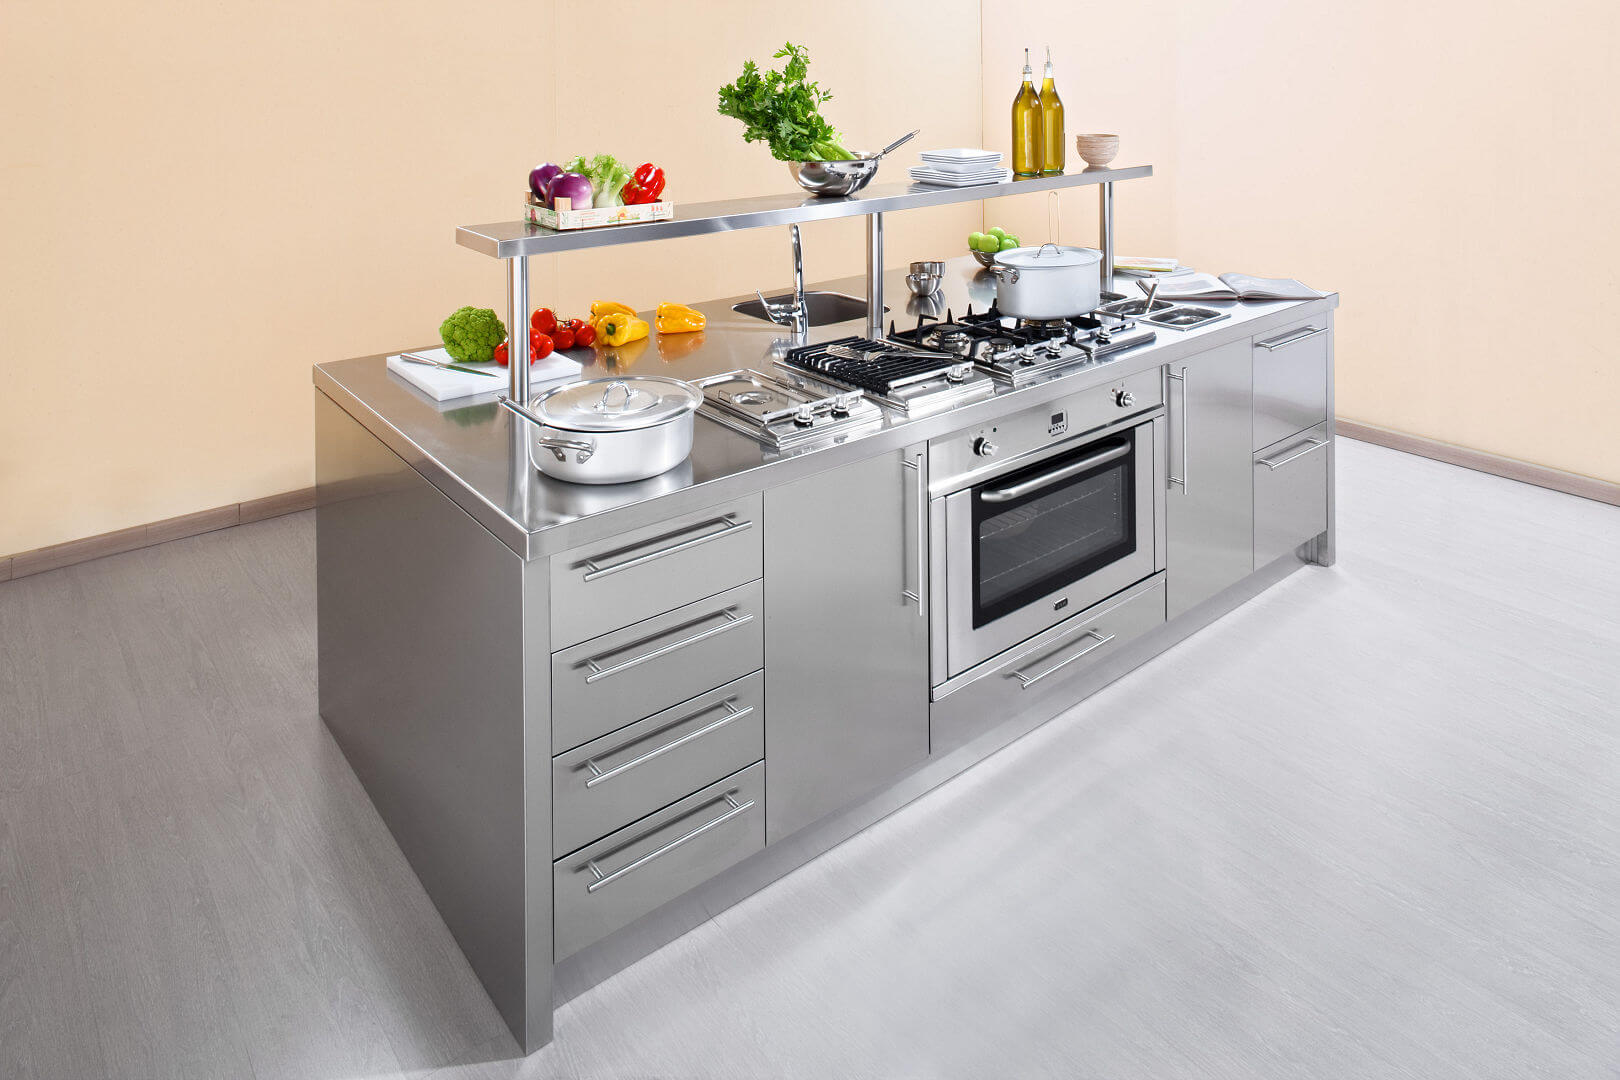 Arca Cucine Italy - Domestic stainless steel kitchens - Workstation - Oven and Fronts